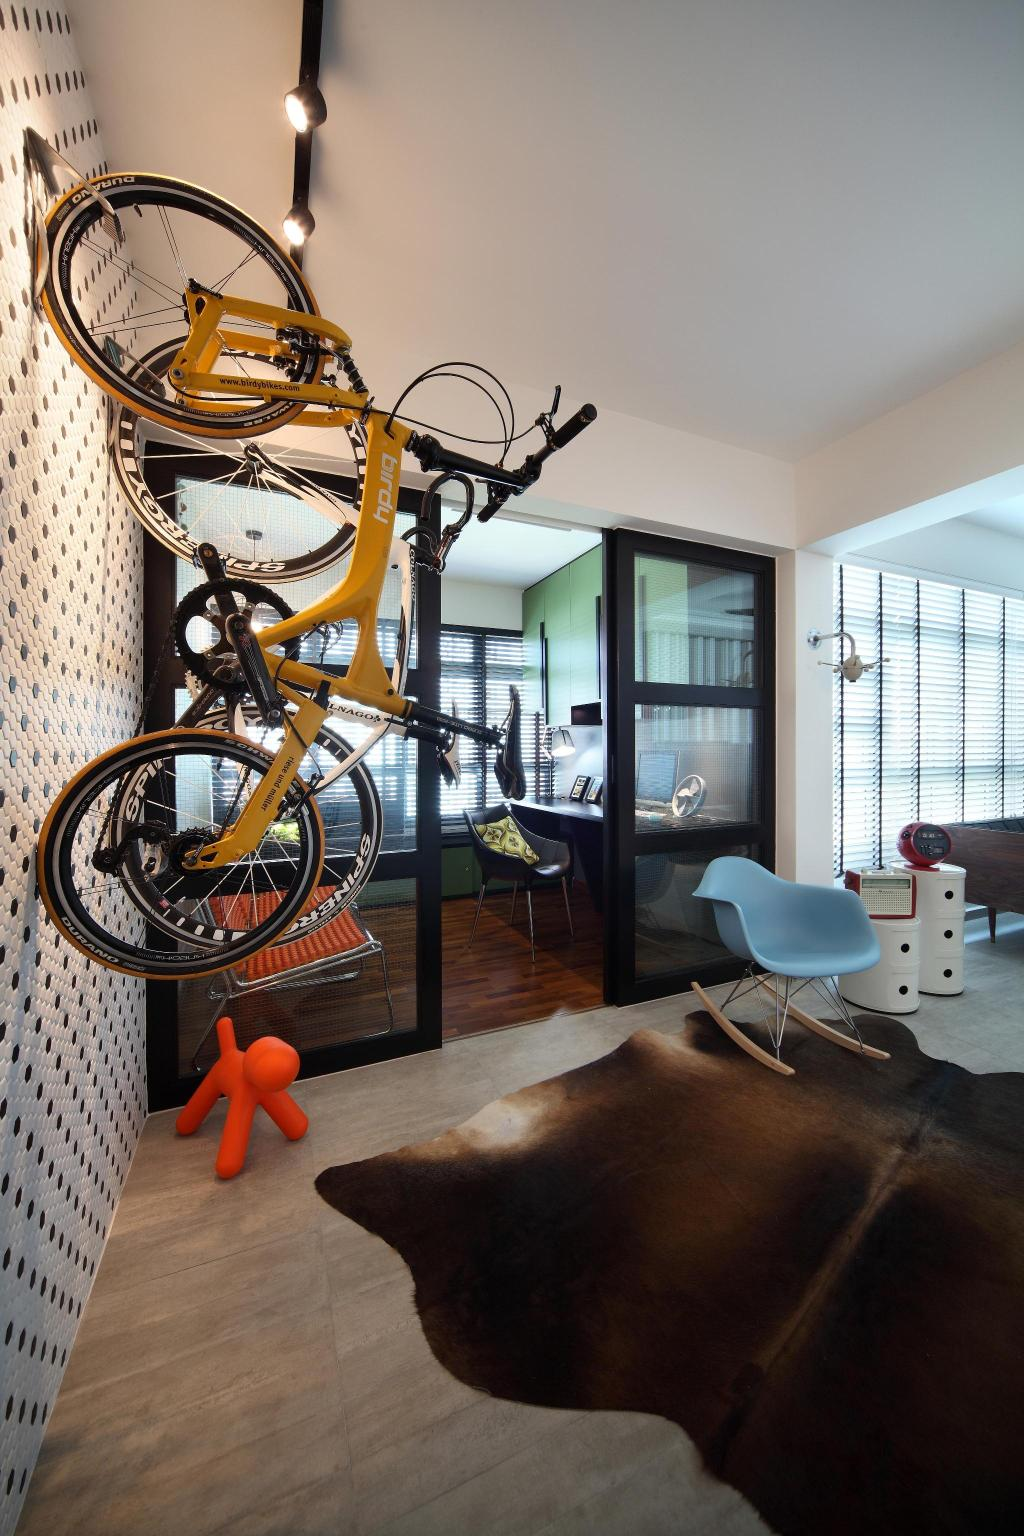 Scandinavian, HDB, Living Room, Ghim Moh Link, Interior Designer, Fuse Concept, Bicycle, Rug, Parquet, Feature Wall, Eero Aarnio Puppy, Track Lighting, Full Length Windows, Venetian Blinds, Rocking Chair, Side Table, Table, Wall Sculpture, Chair, Furniture, Bike, Transportation, Vehicle